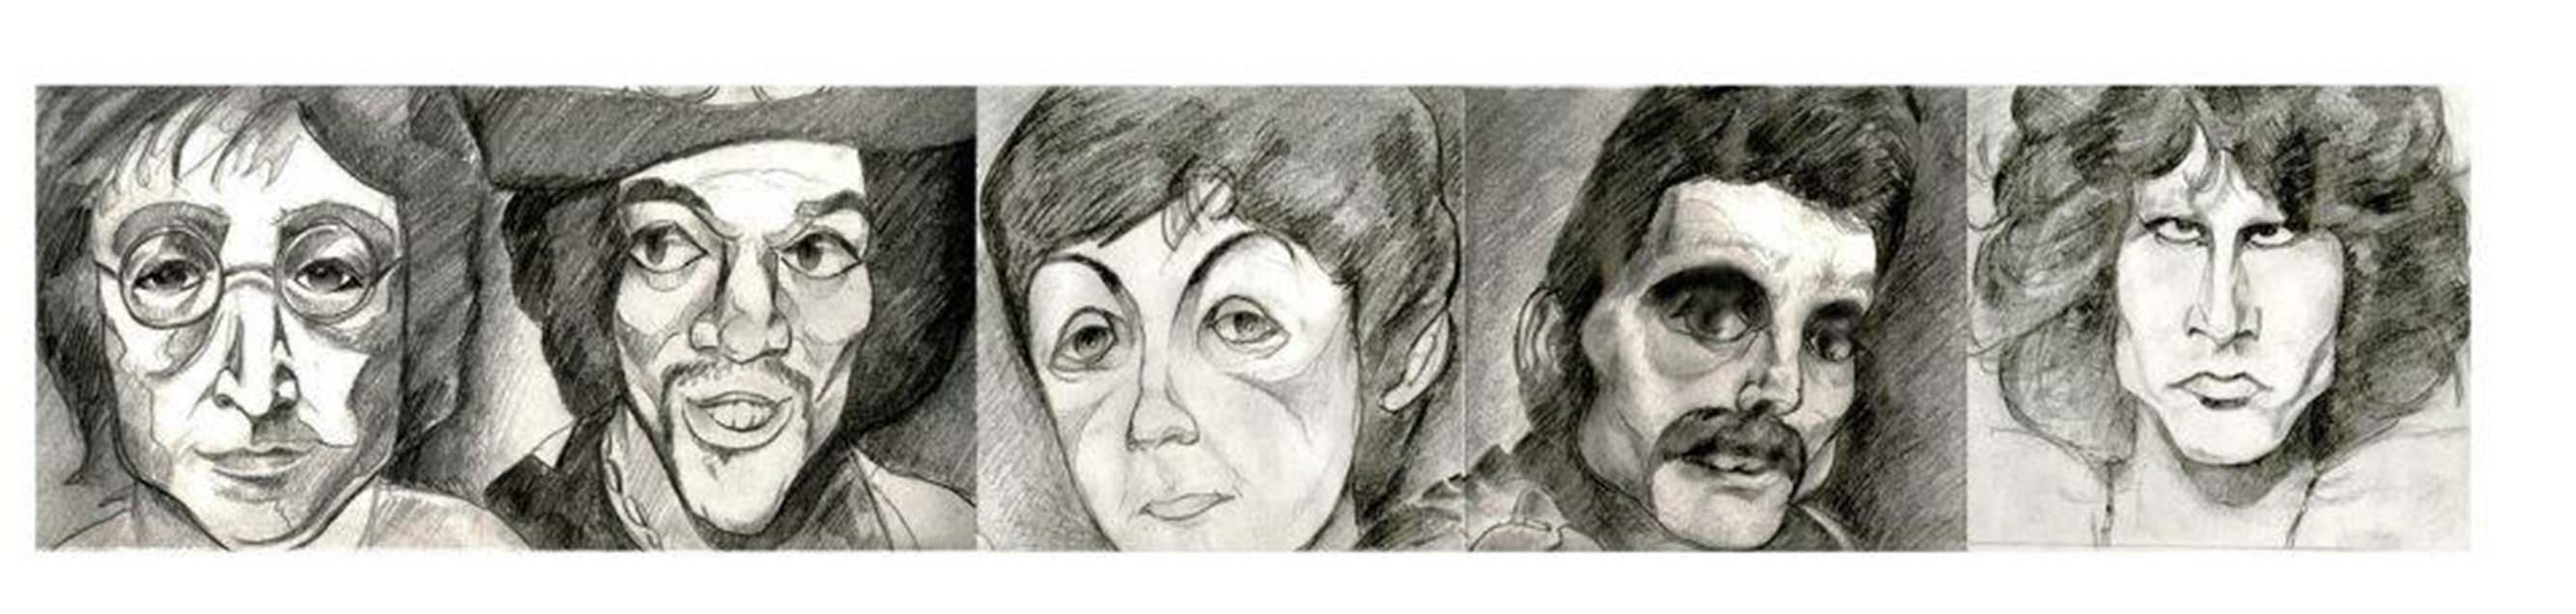 Rock Artist Pencil Illustration